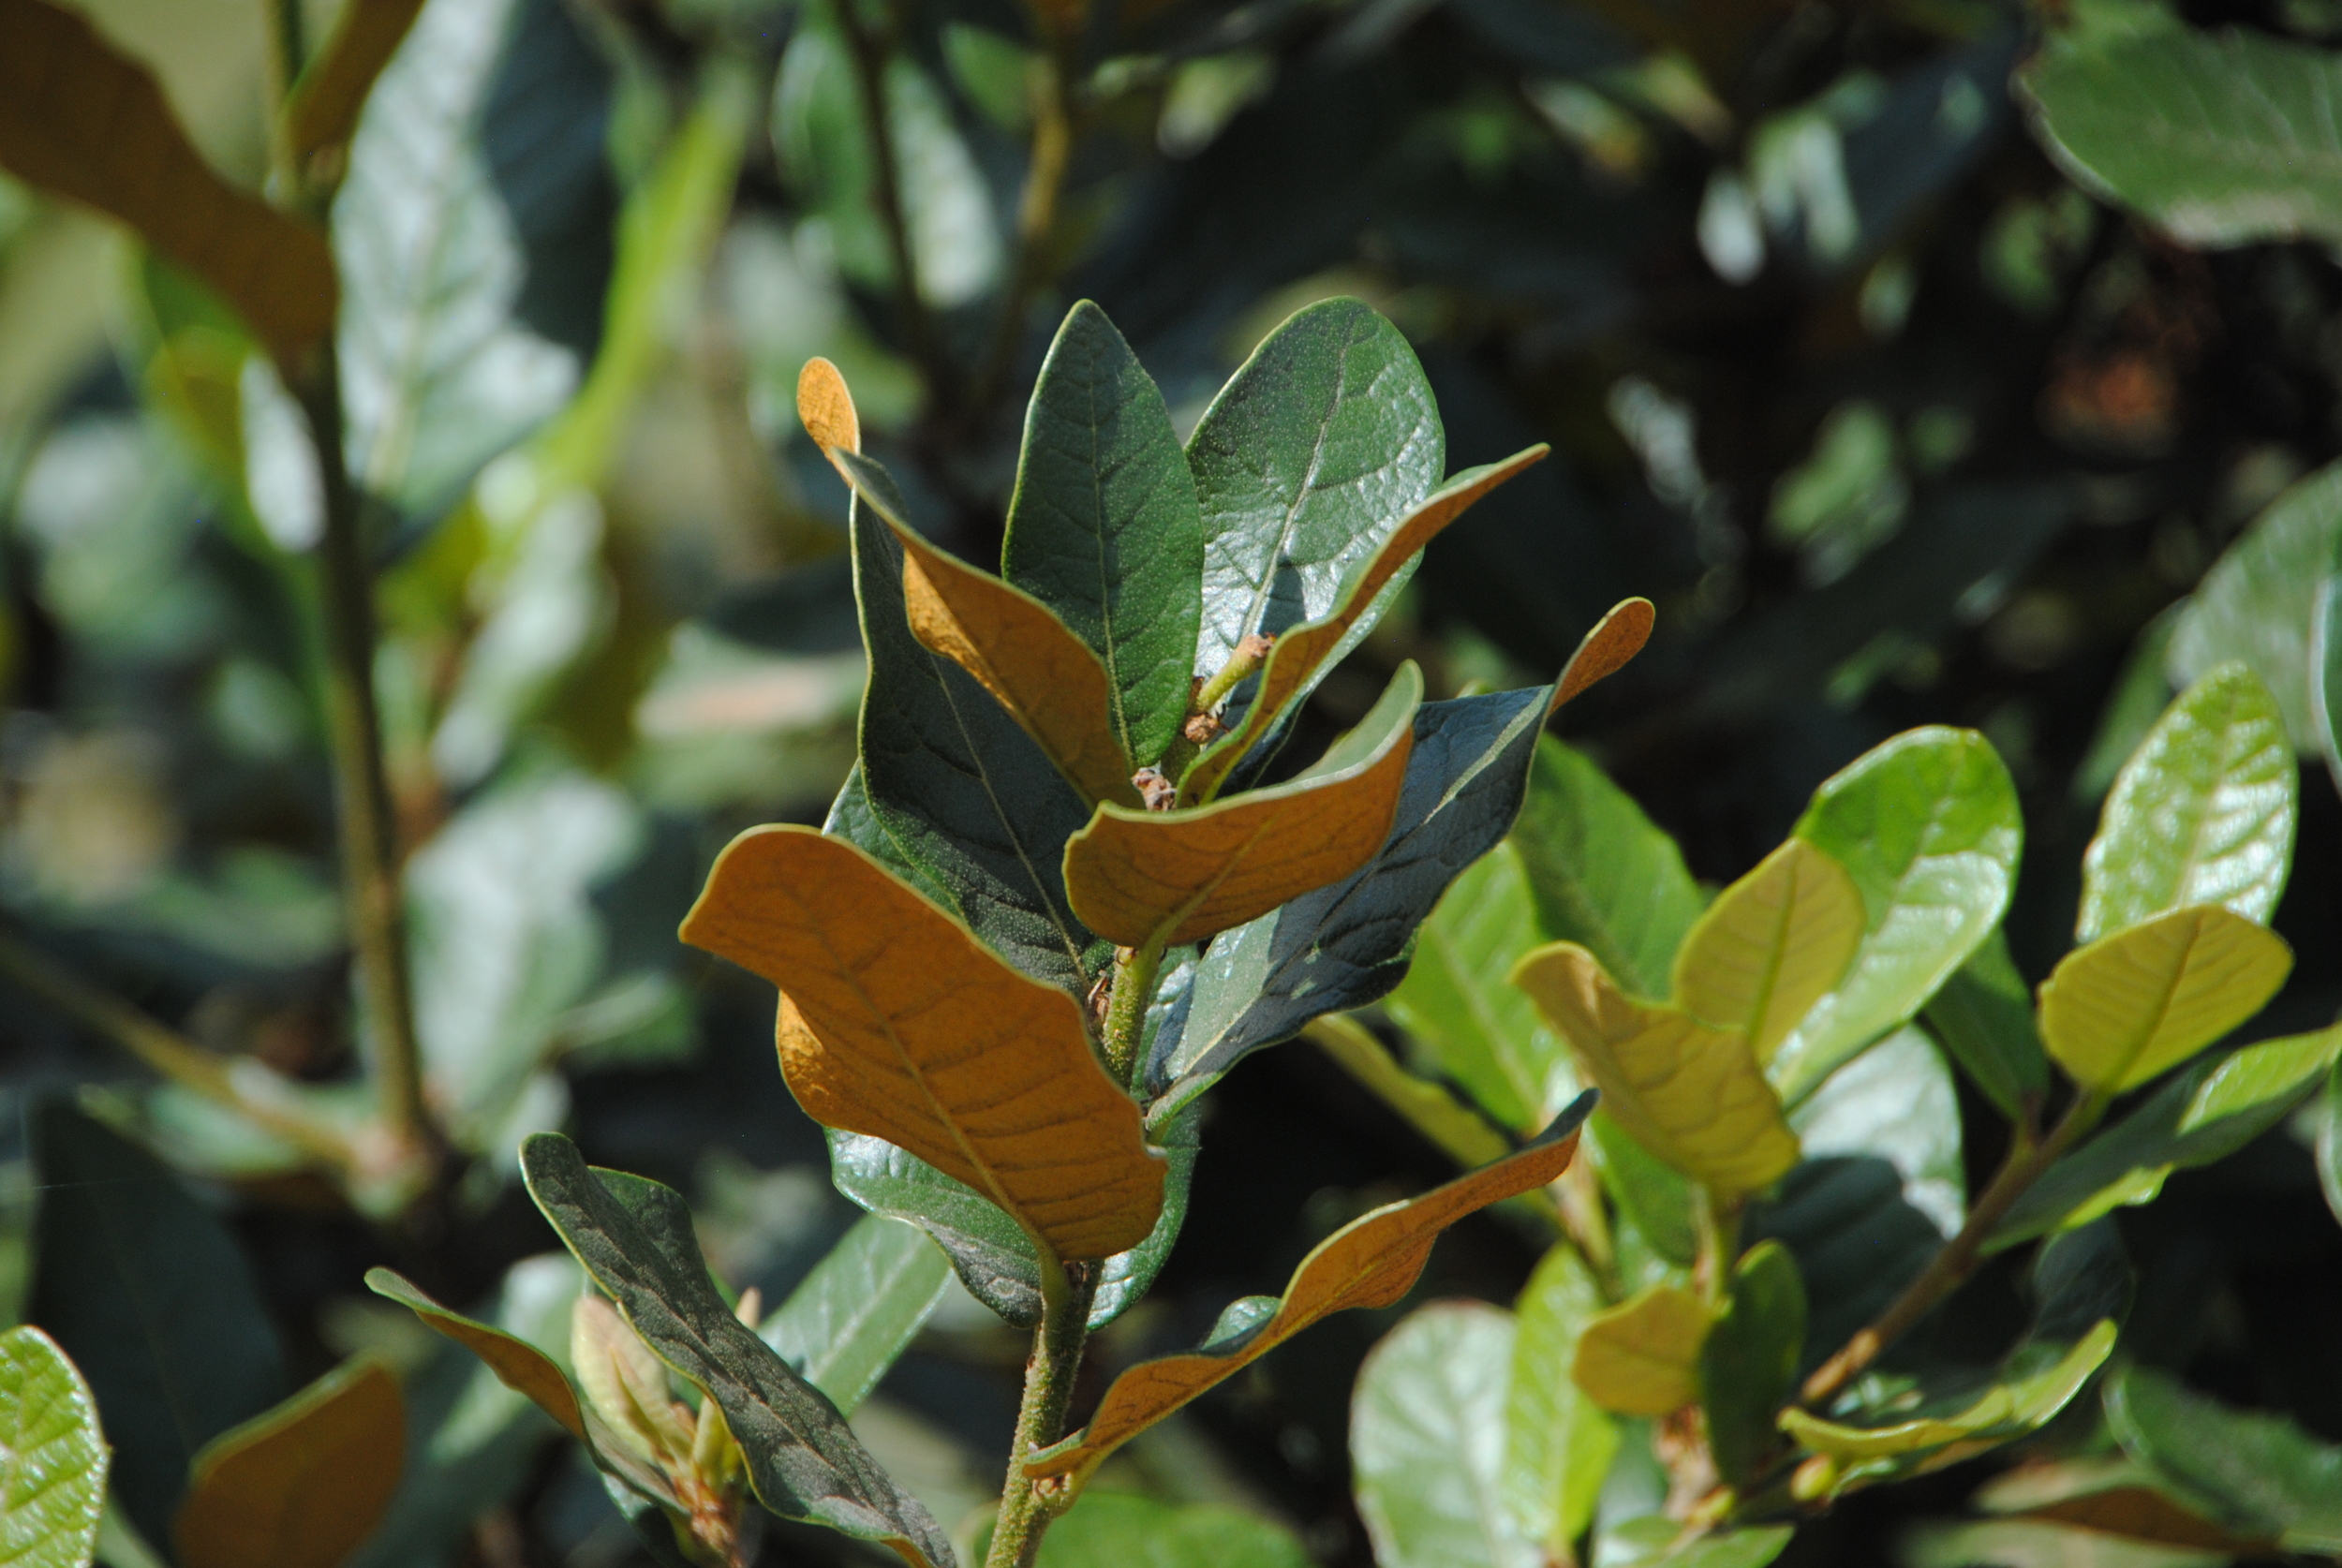 The small evergreen oak, Quercus guajavifolia was beautiful with leathery green leaves and rusty orange backs.